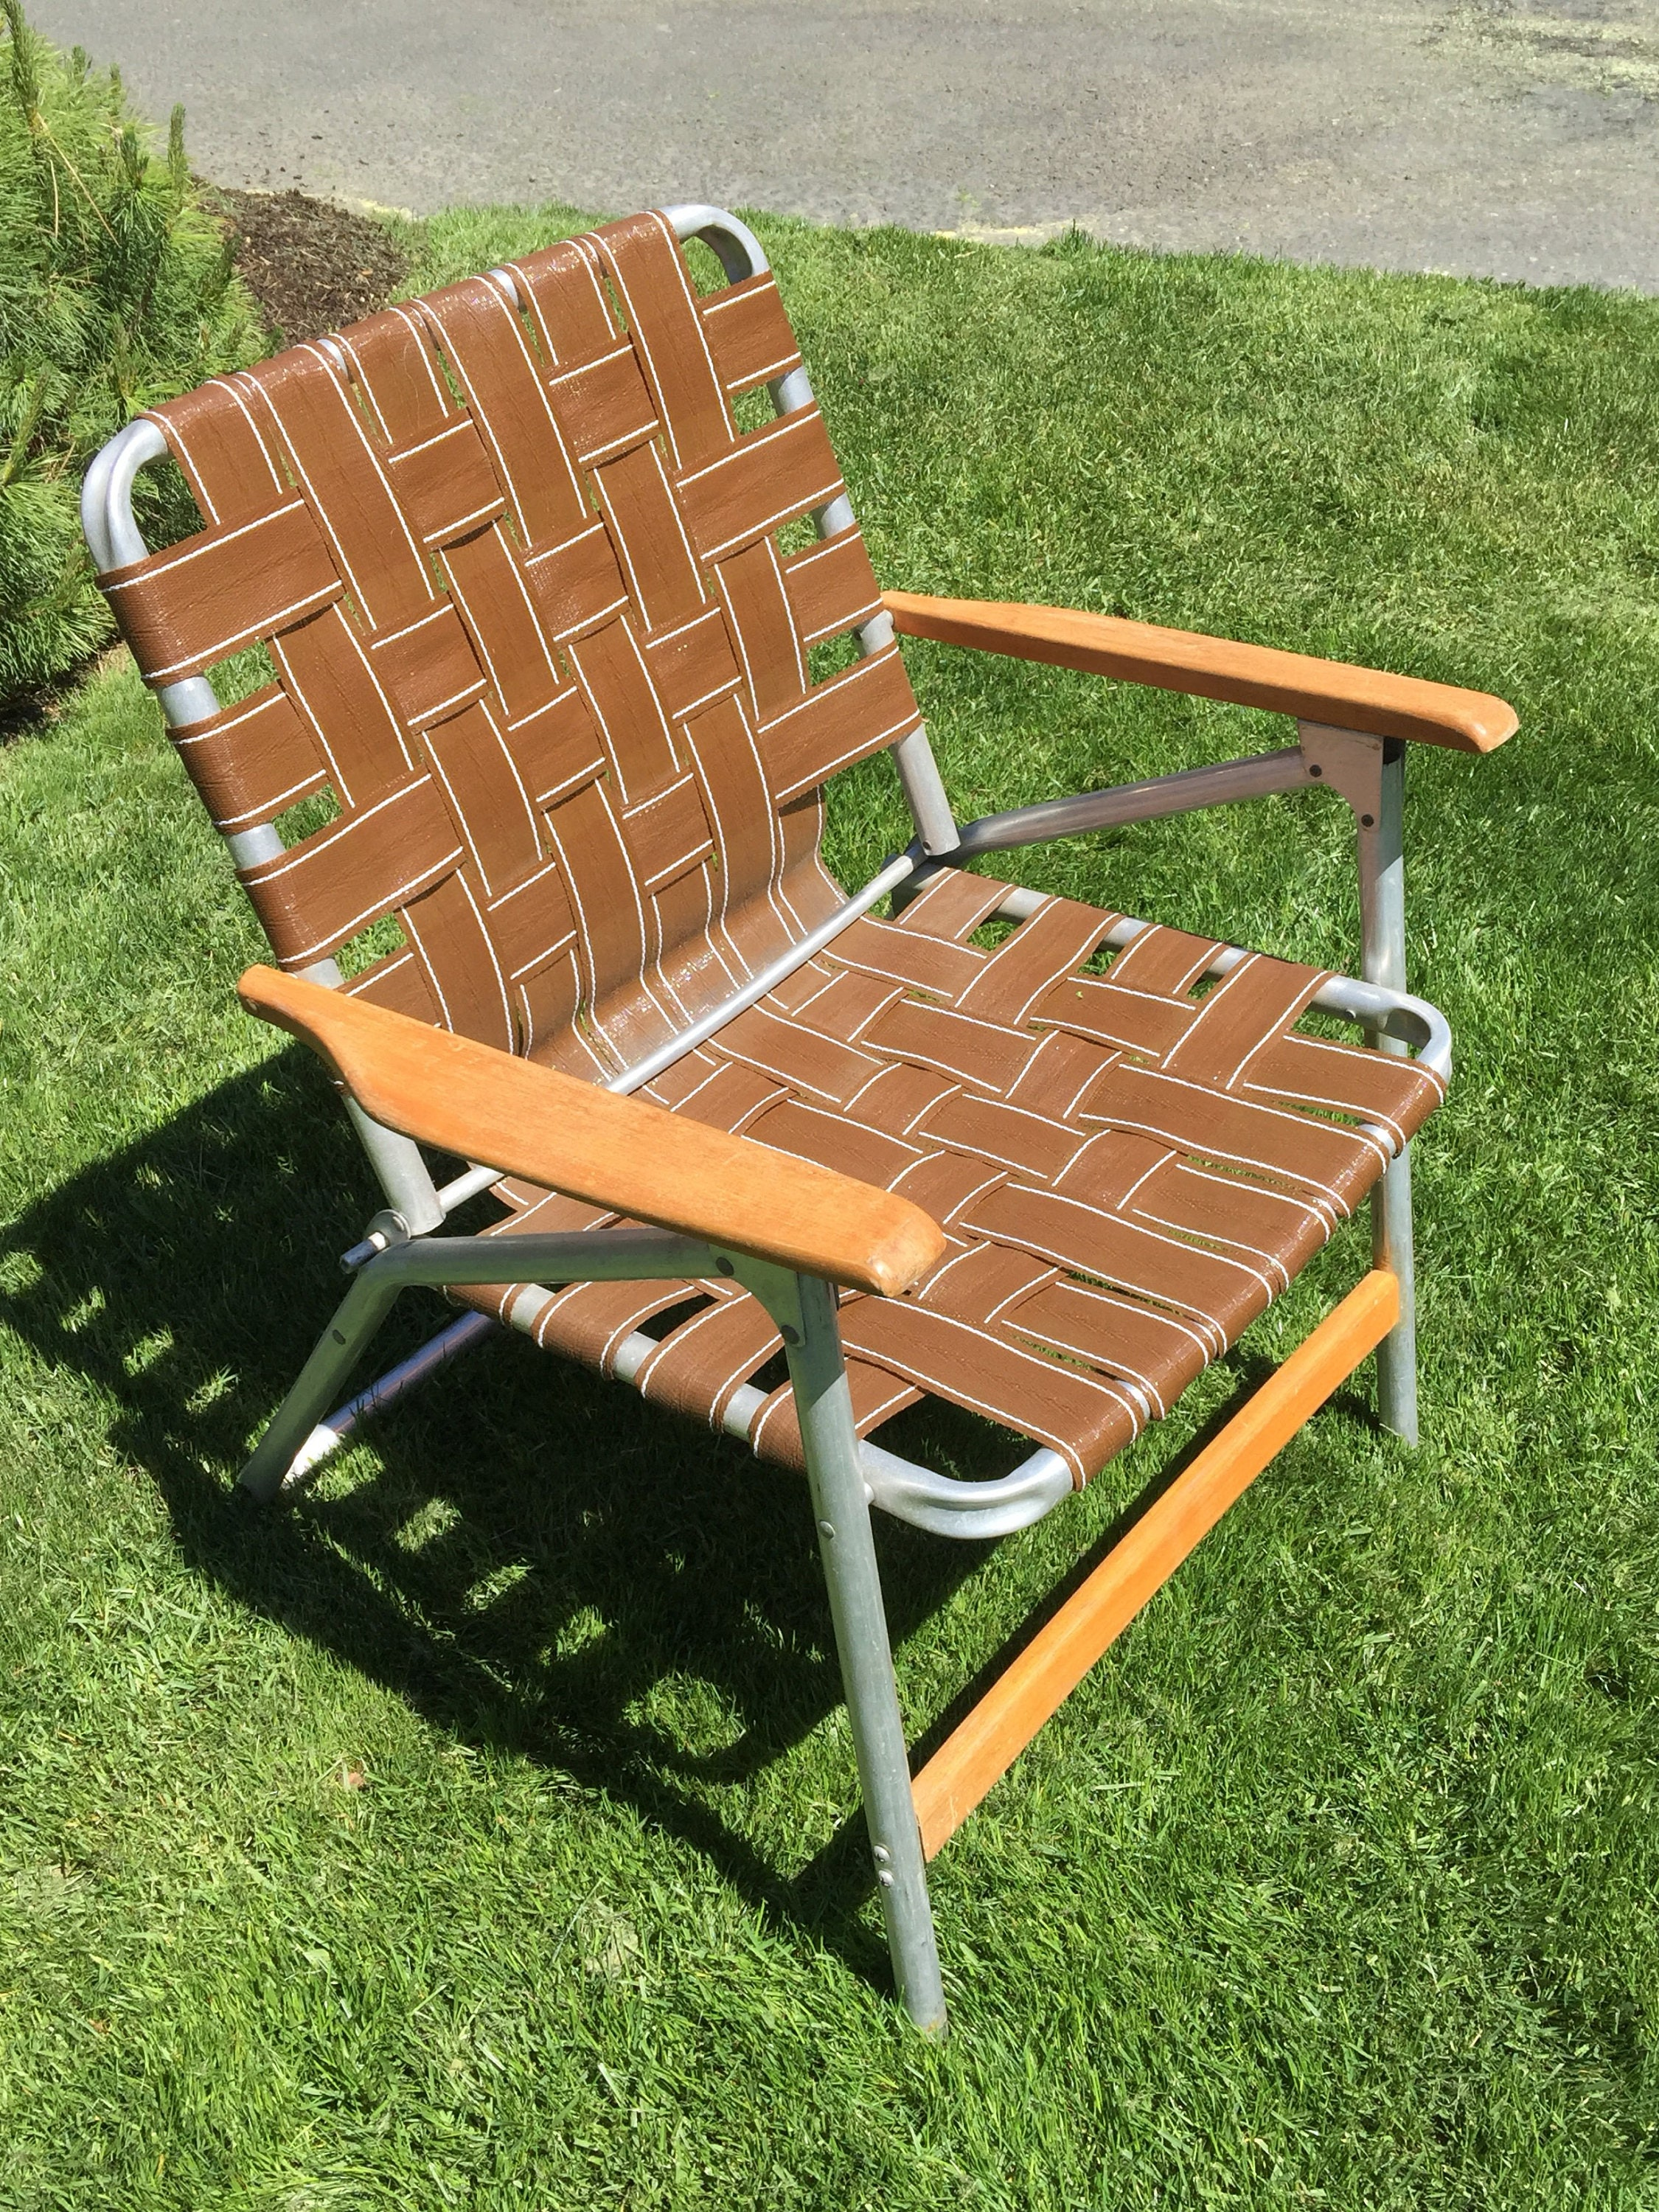 webbed lawn chair with wood handles cling cing